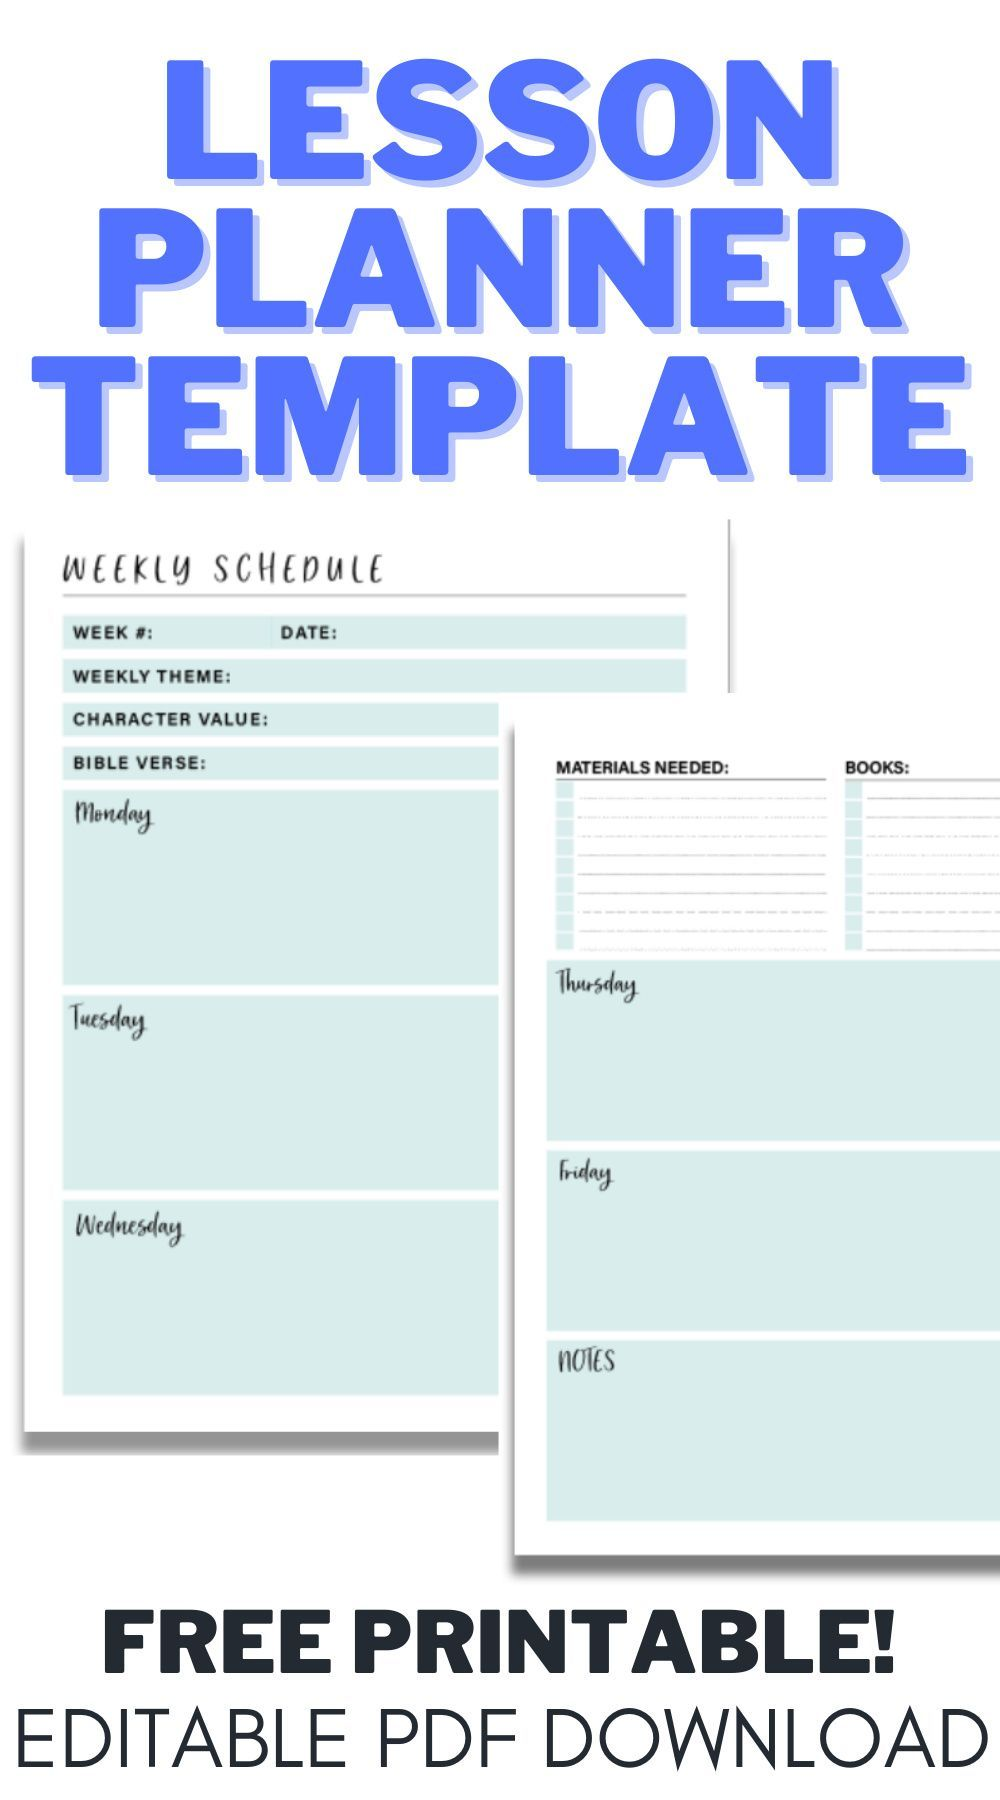 Lesson Planner Templates Editable FREE PDF Downloads For